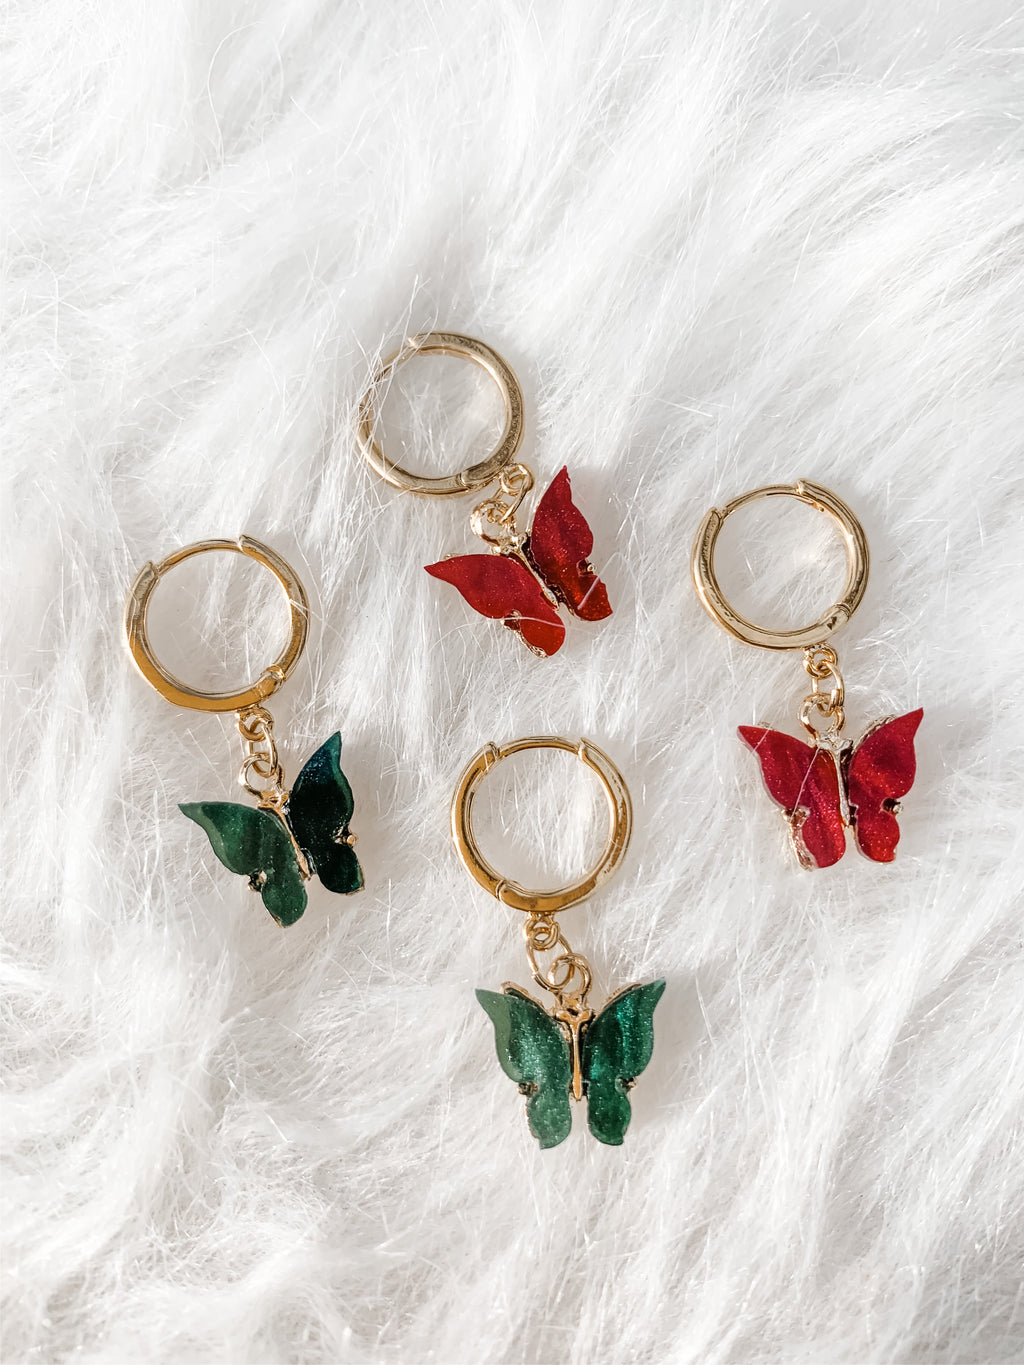 Butterfly Earrings - The Pretty Eclectic